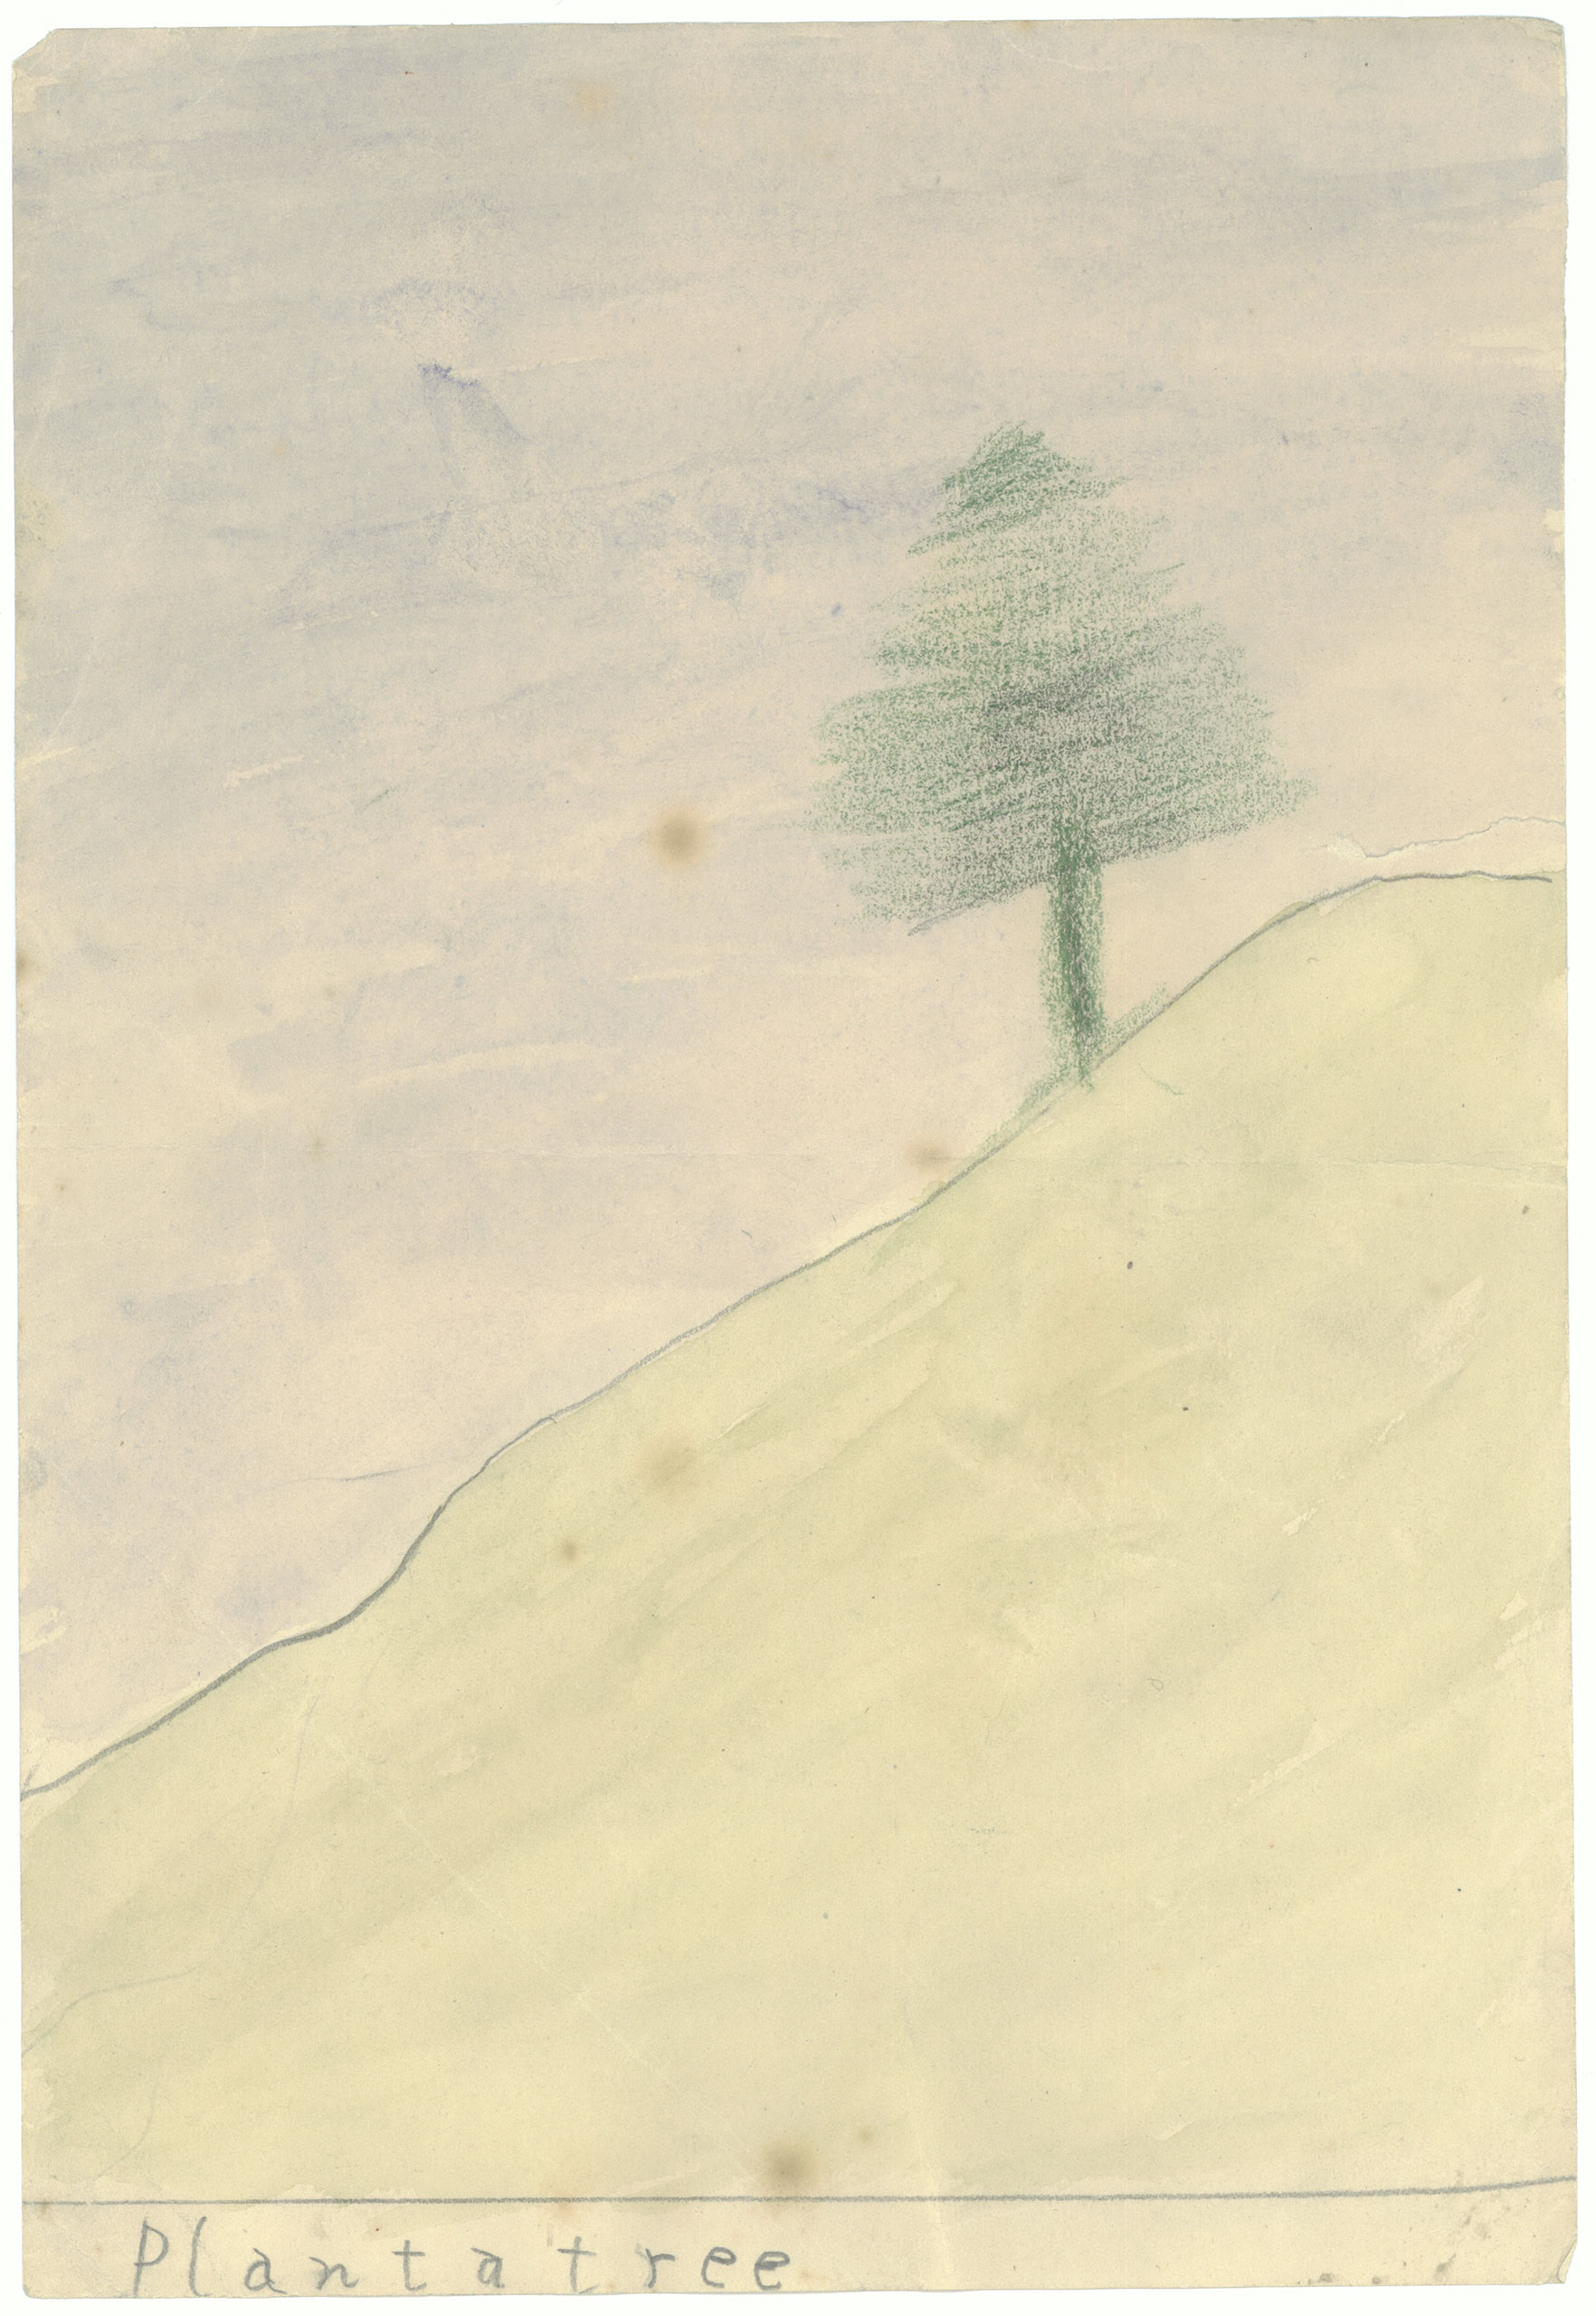 Plant a Tree,  crayon drawing by John F. Kennedy, ca. 1929-1930.